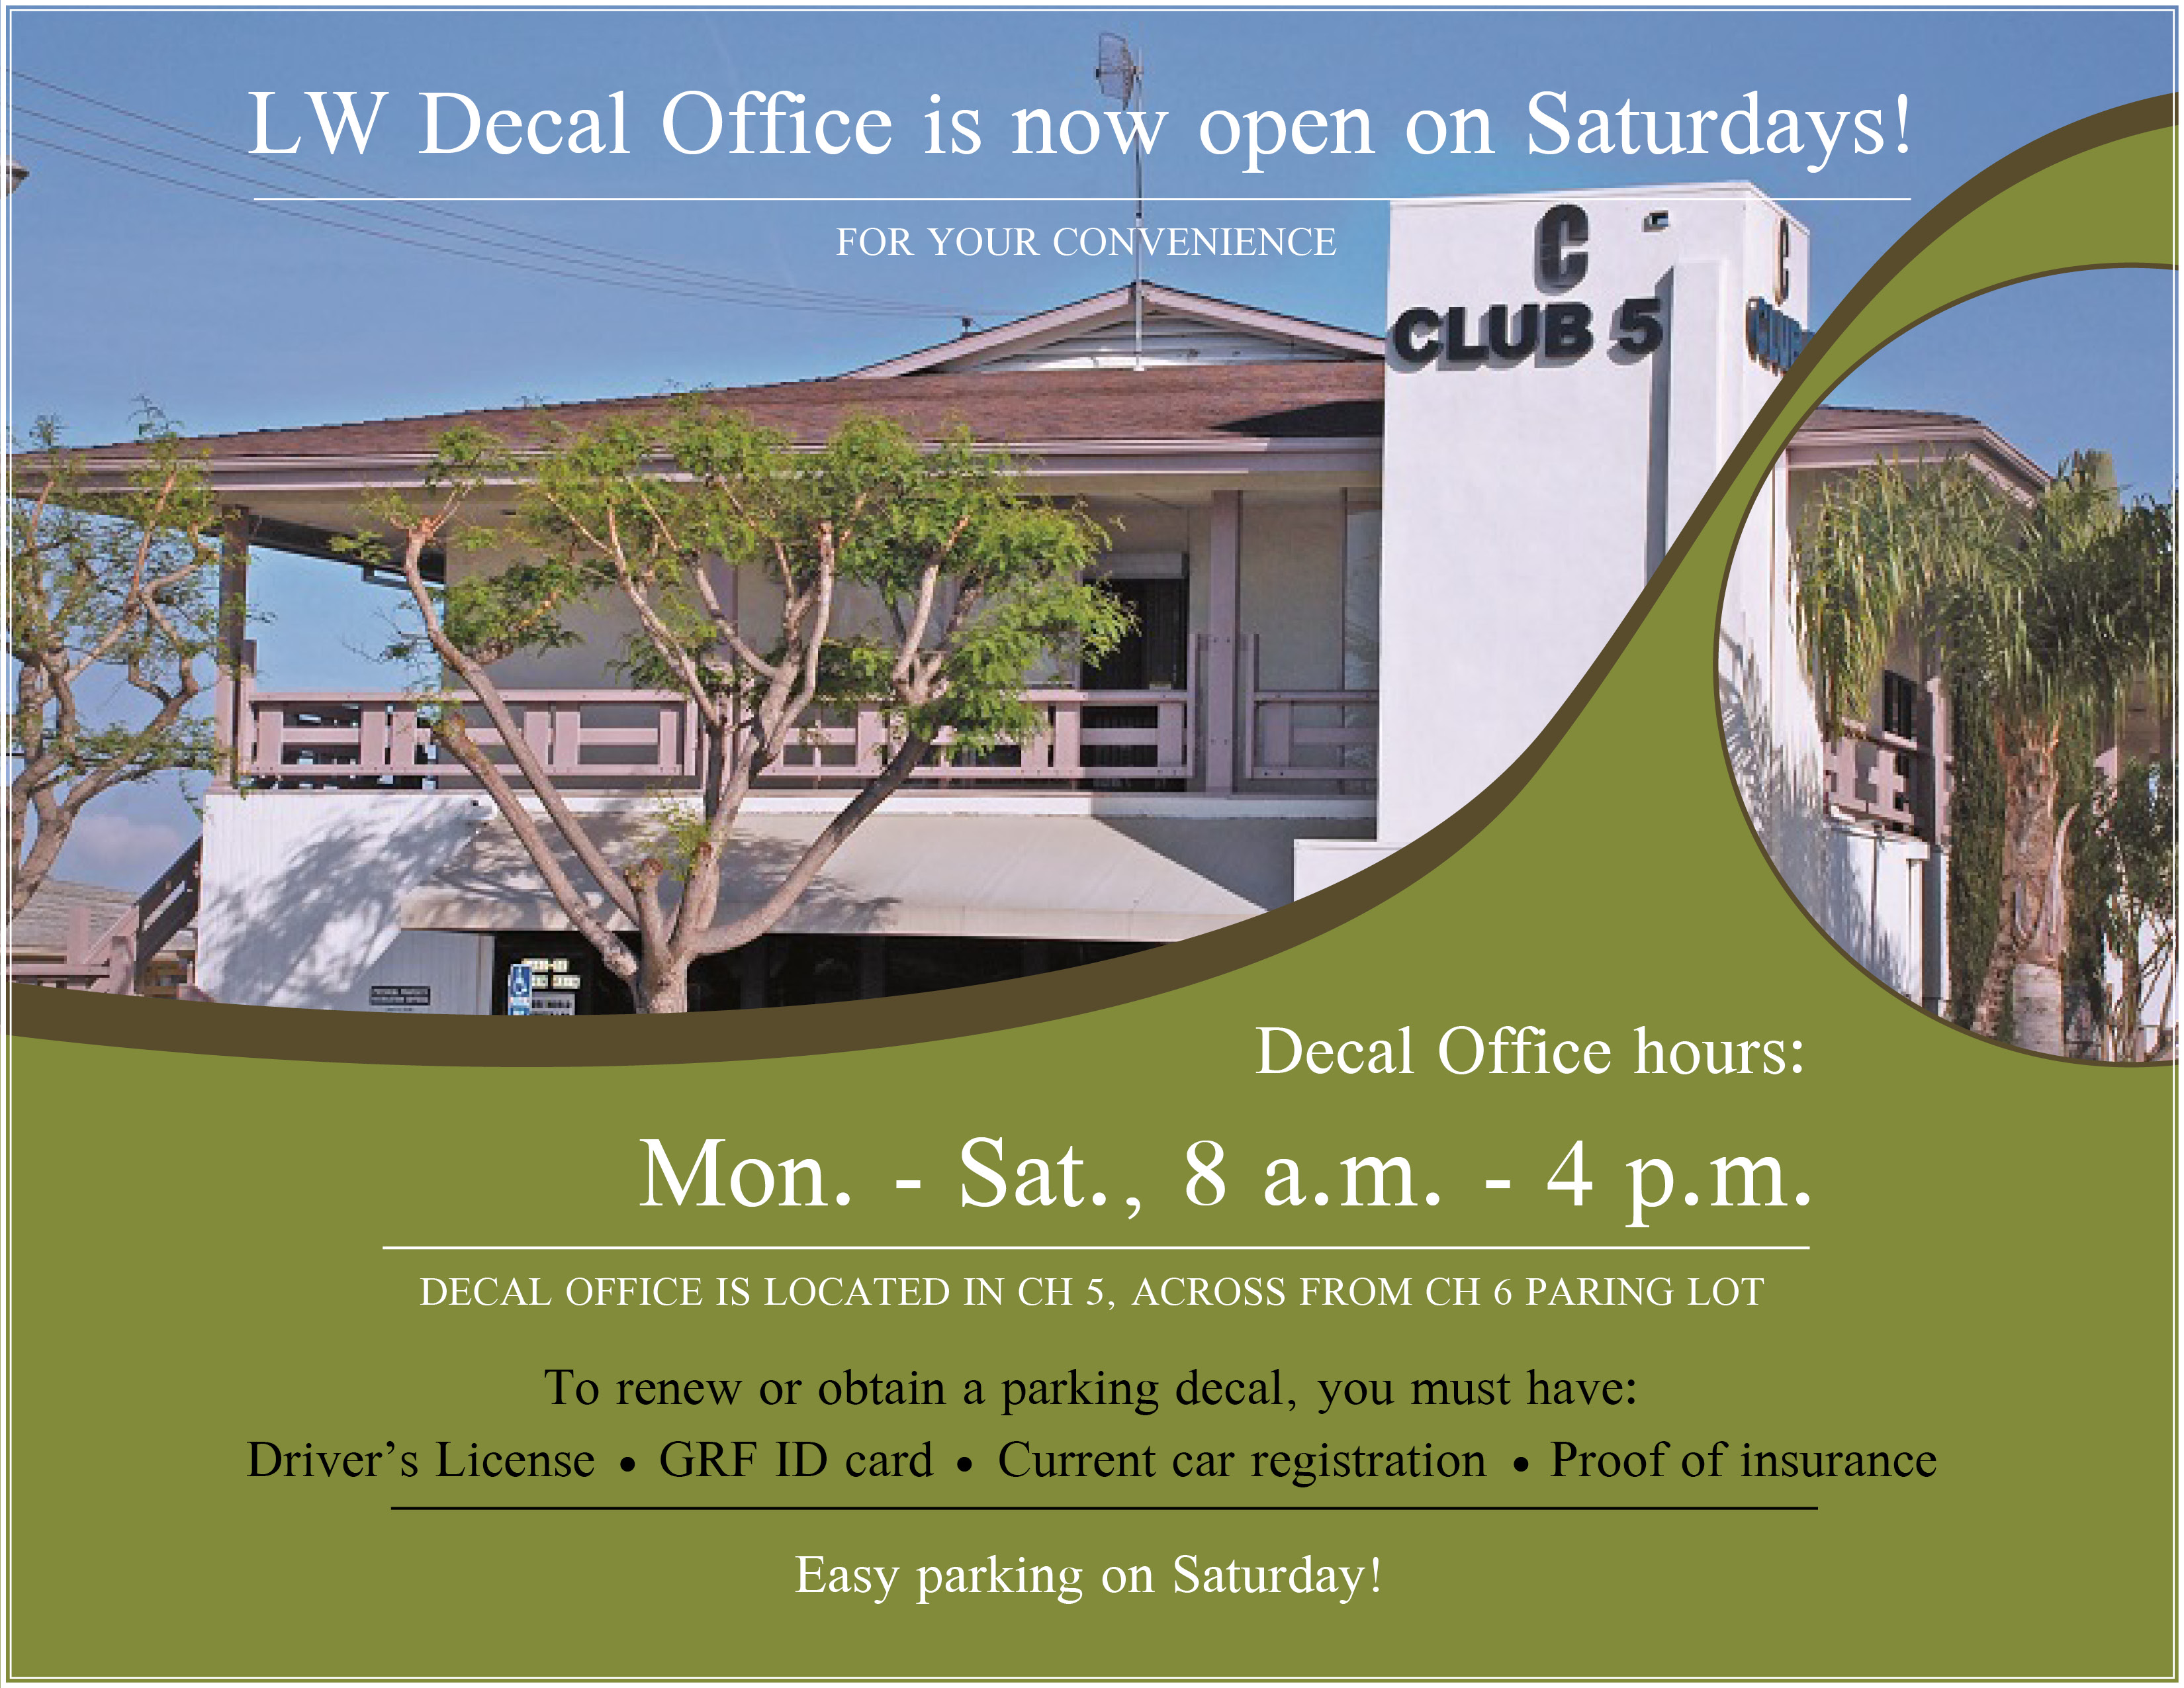 LW Decal office